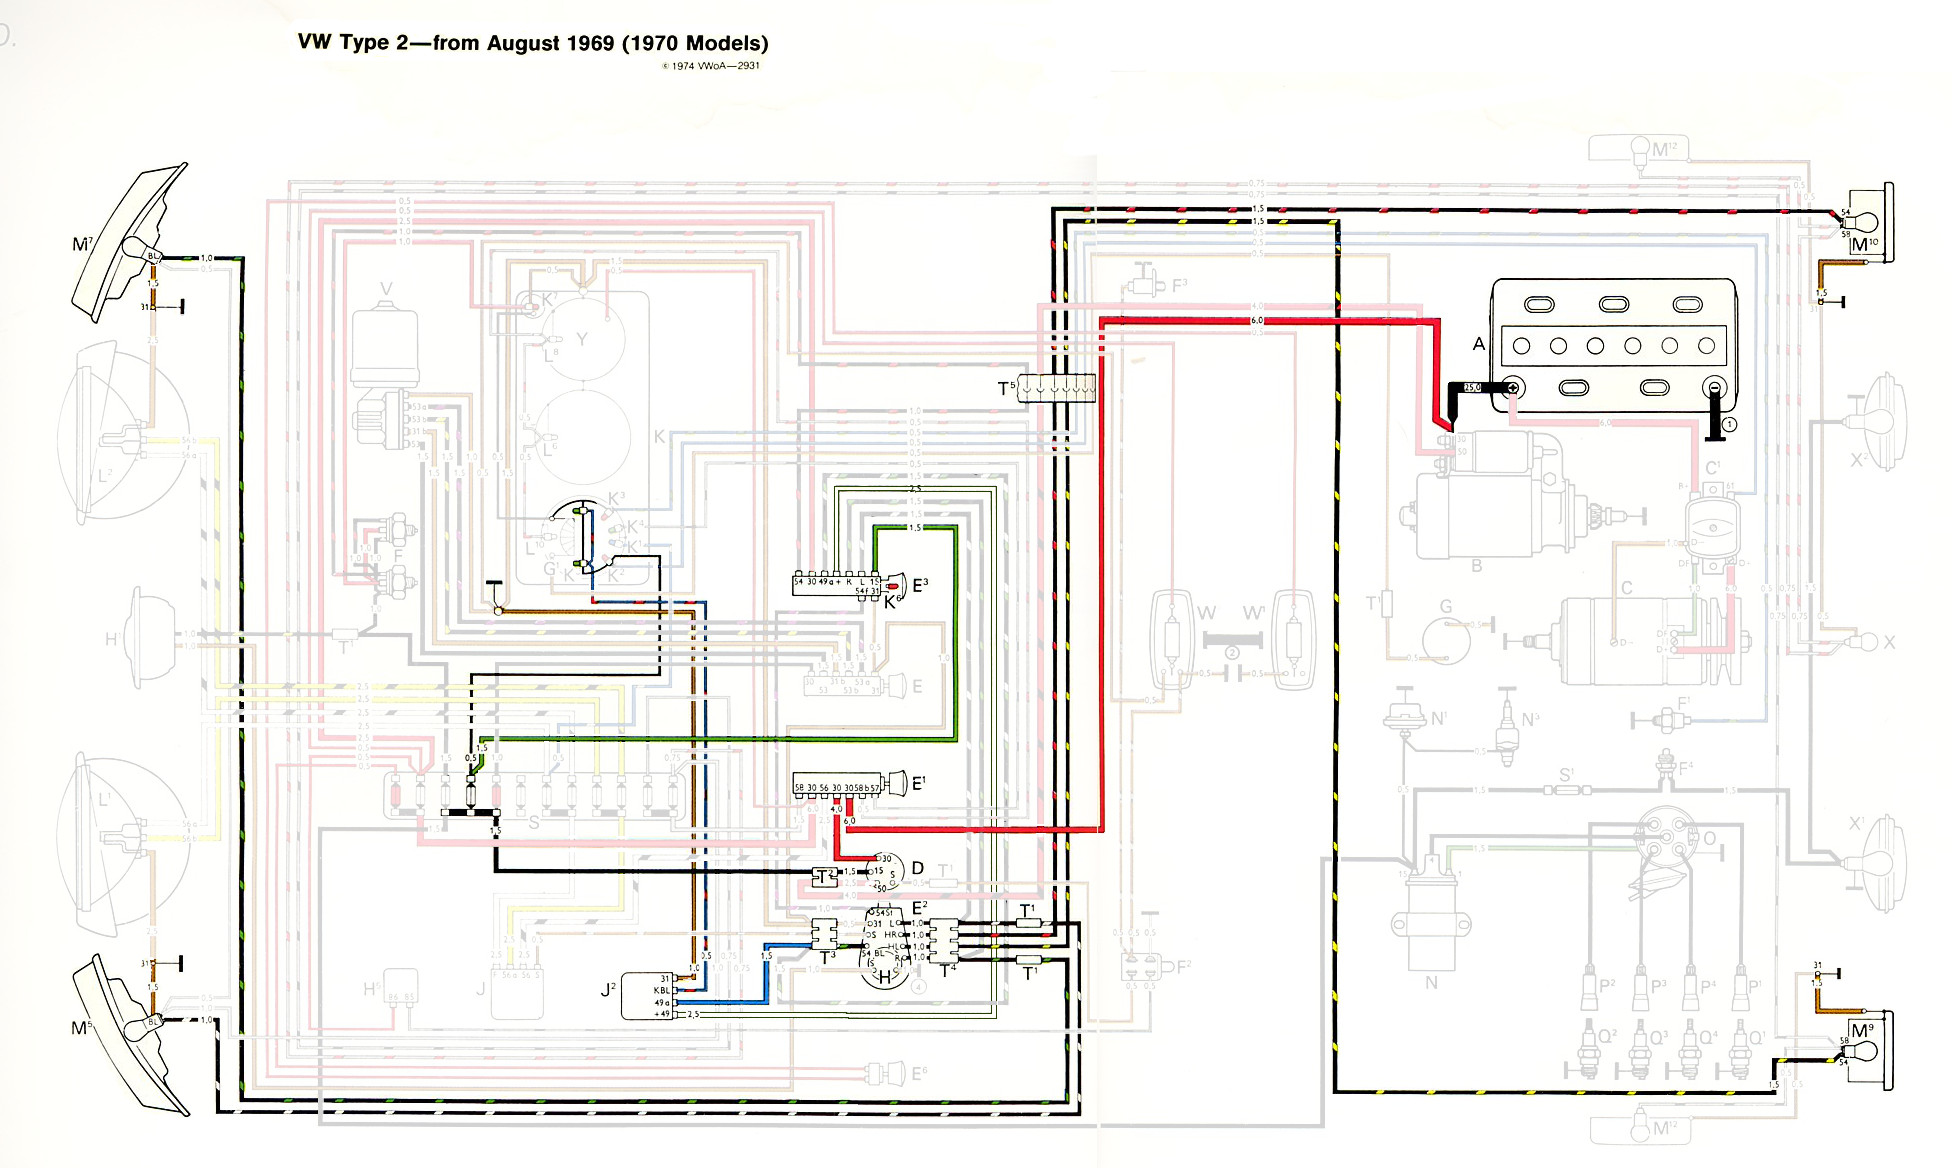 1970bus_signals 1970 vw beetle wiring diagram 1967 vw beetle wiring diagram Wiring Harness Diagram at metegol.co